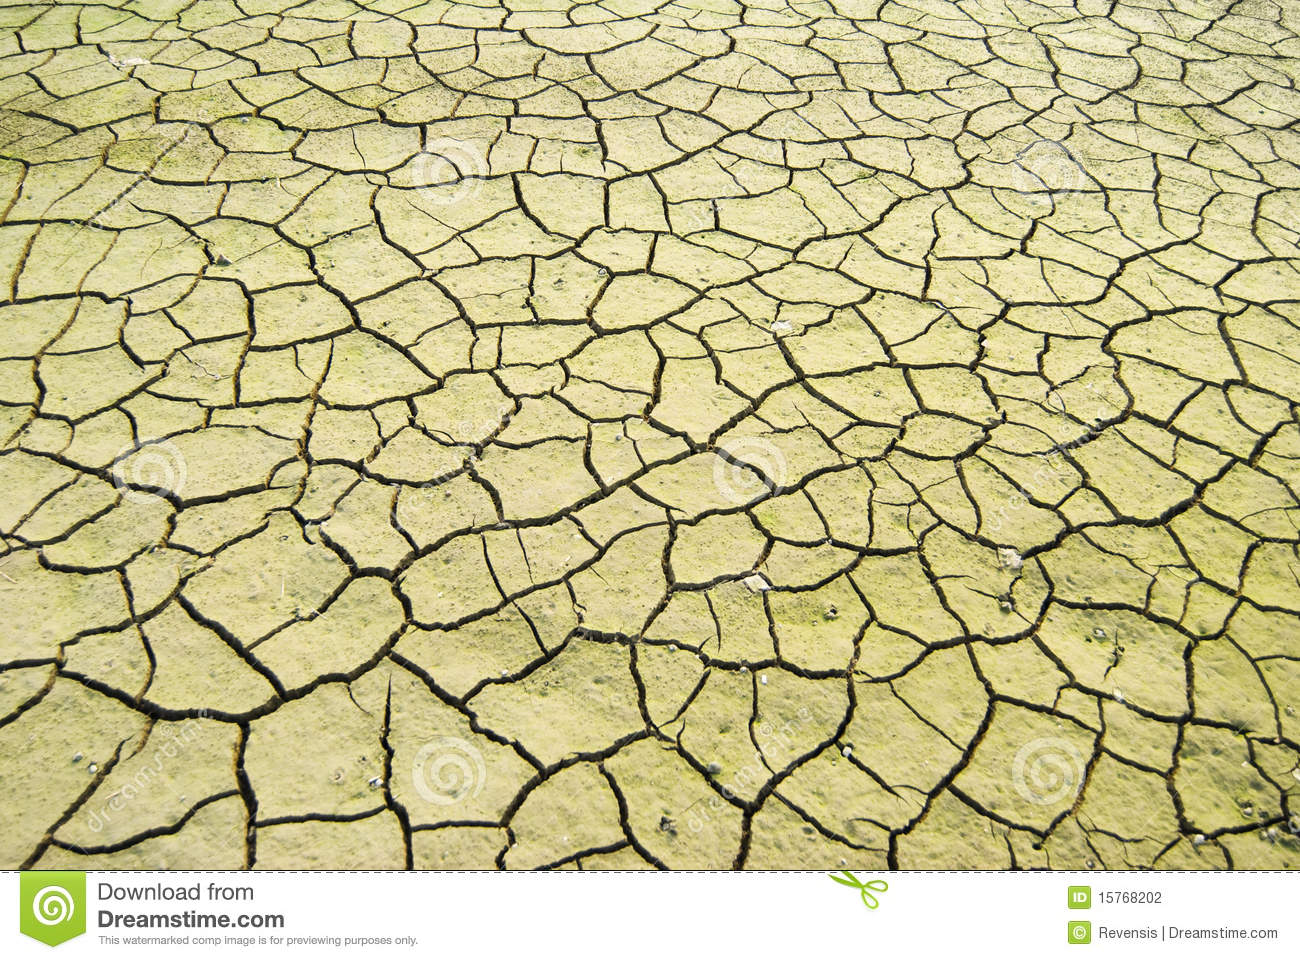 Drought Land Was Cracked. Stock Photography.